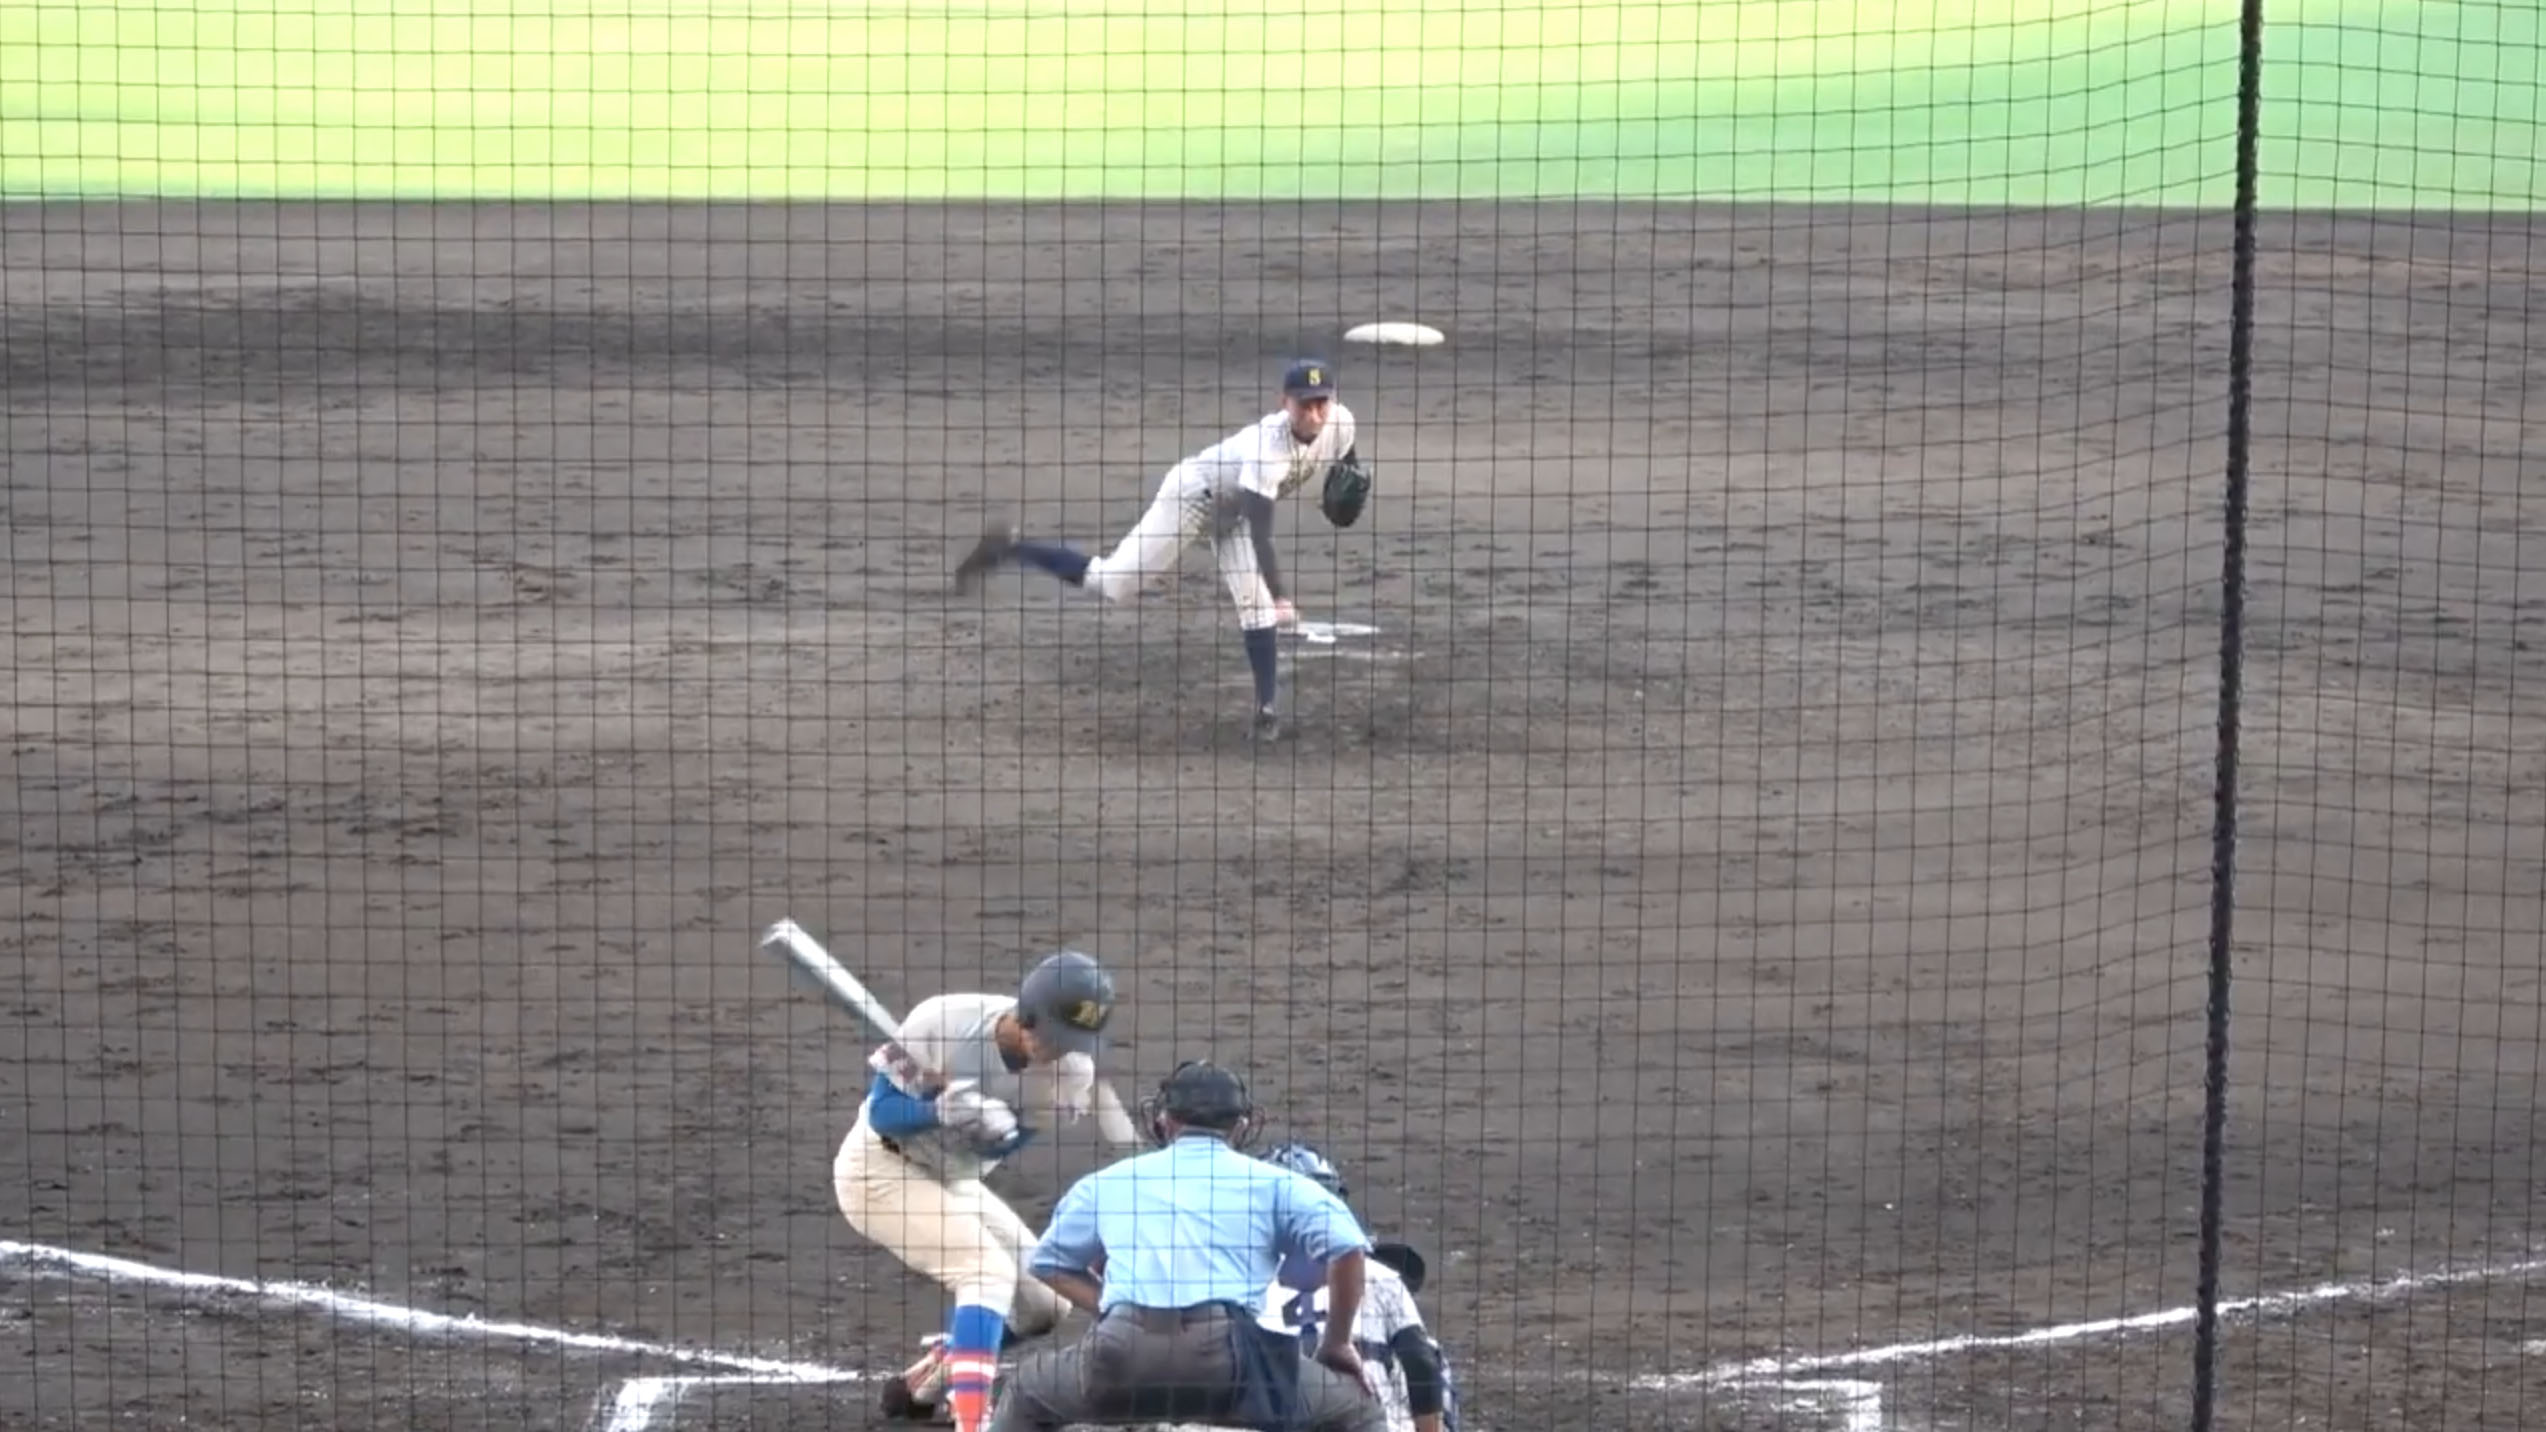 Koshien: Japanese high school baseball player is a good sport (video)